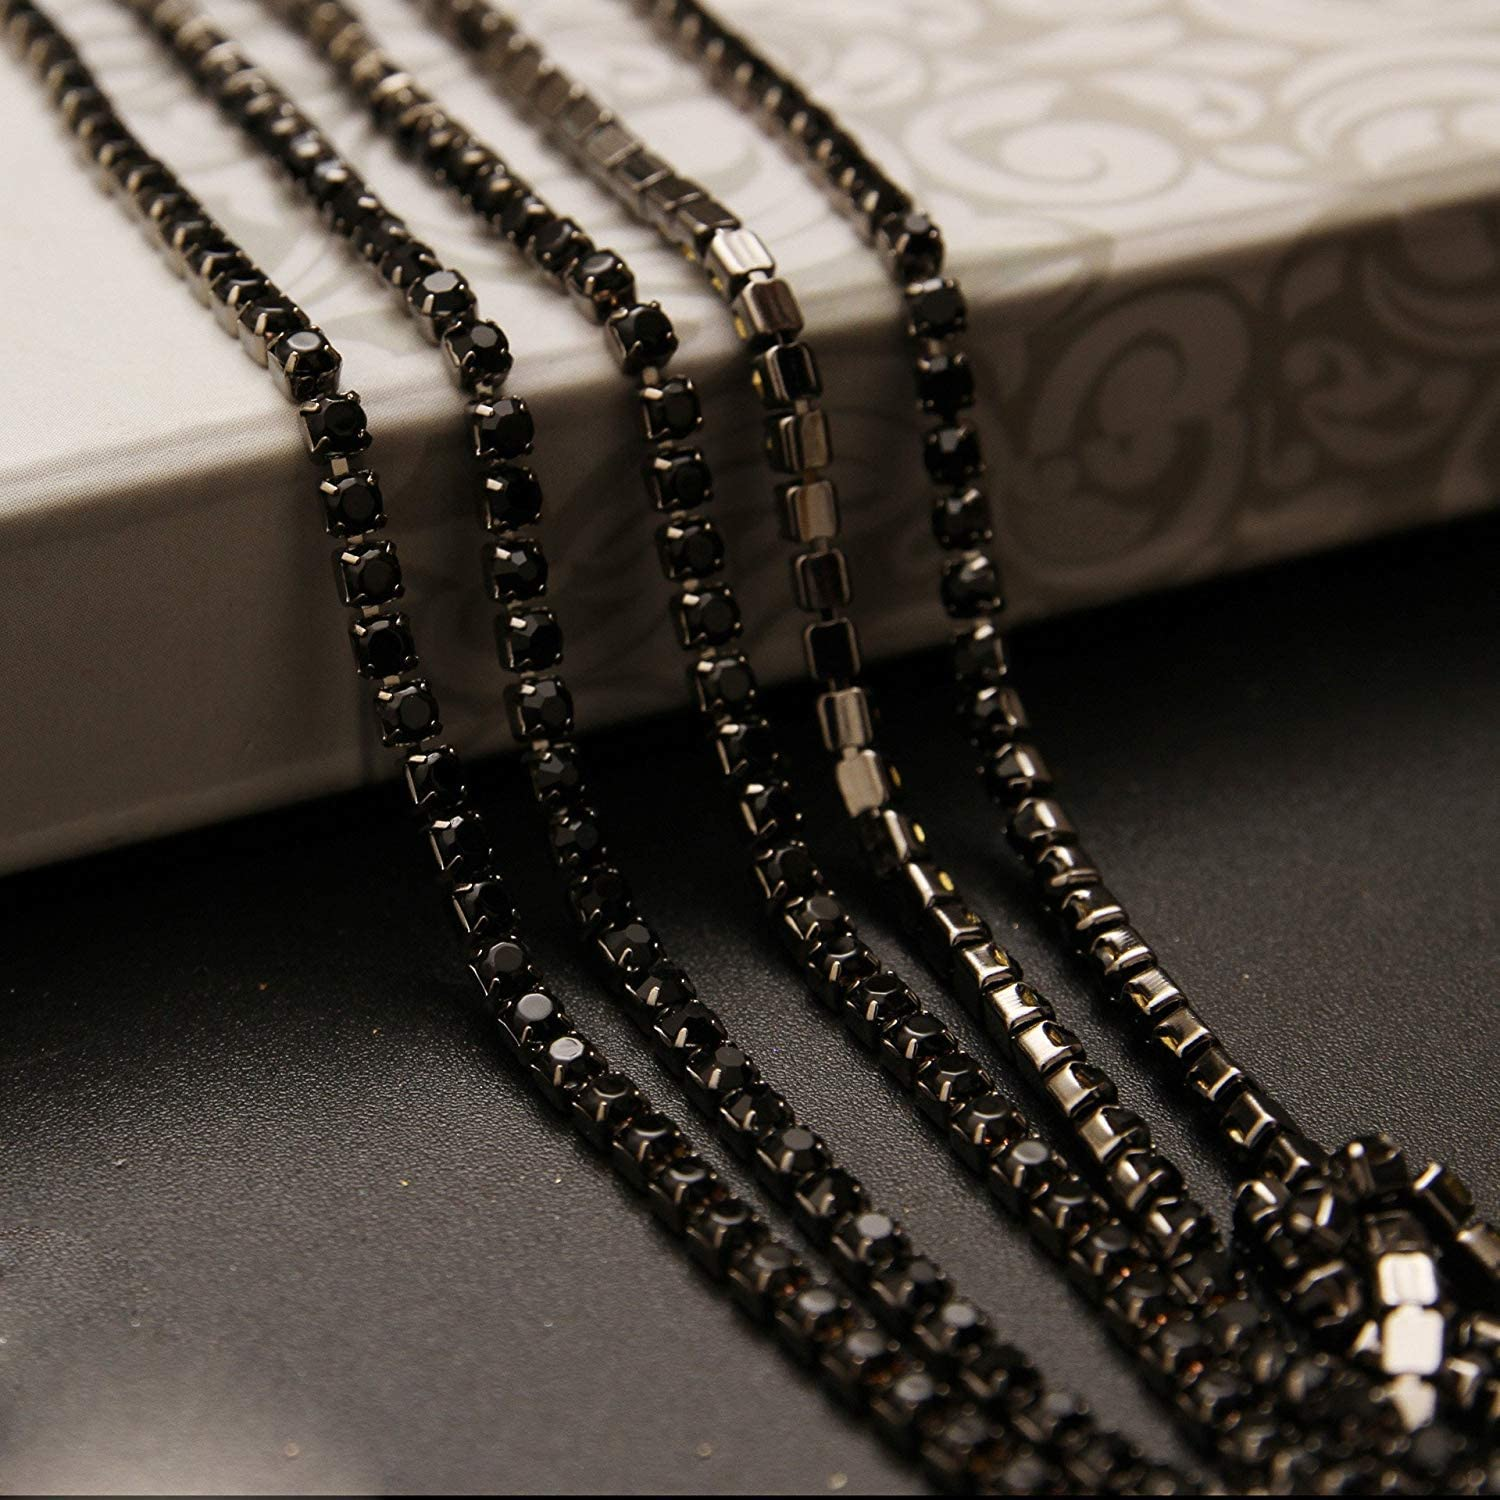 USIX 10 Yards Crystal Rhinestone Close Chain Trimming Claw Chain Multi Size Color Rhinestone Chain for DIY Arts Craft Sewing Jewelry Making Cobalt-Silver Chain SS8//2.5MM